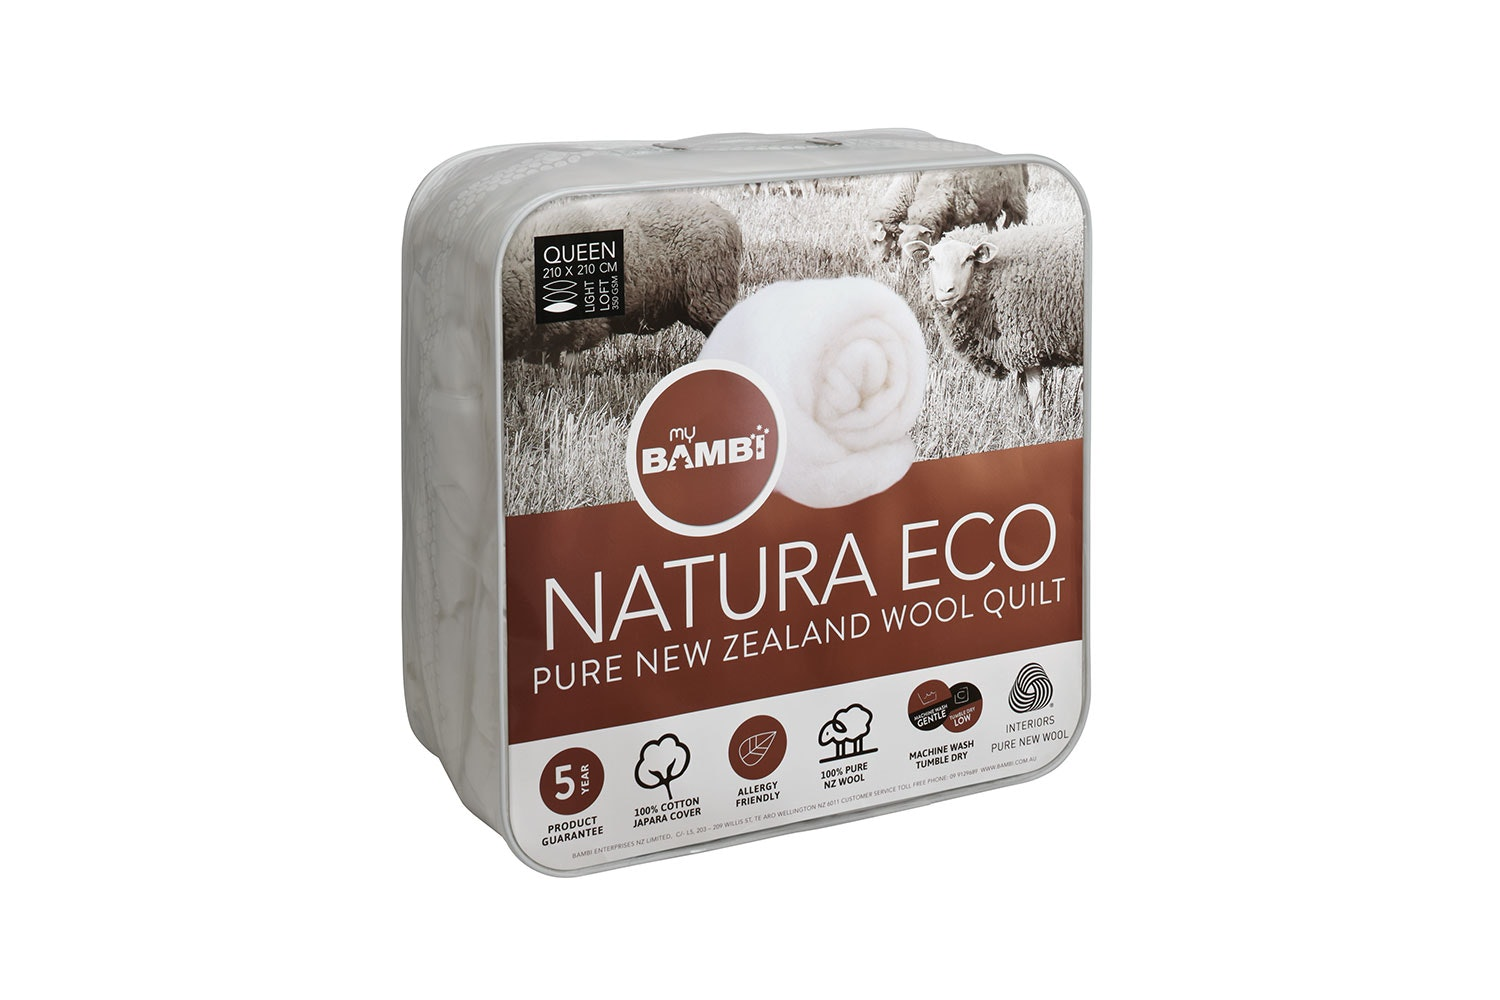 Natura Eco NZ Wool 350gsm Duvet Inner by Bambi